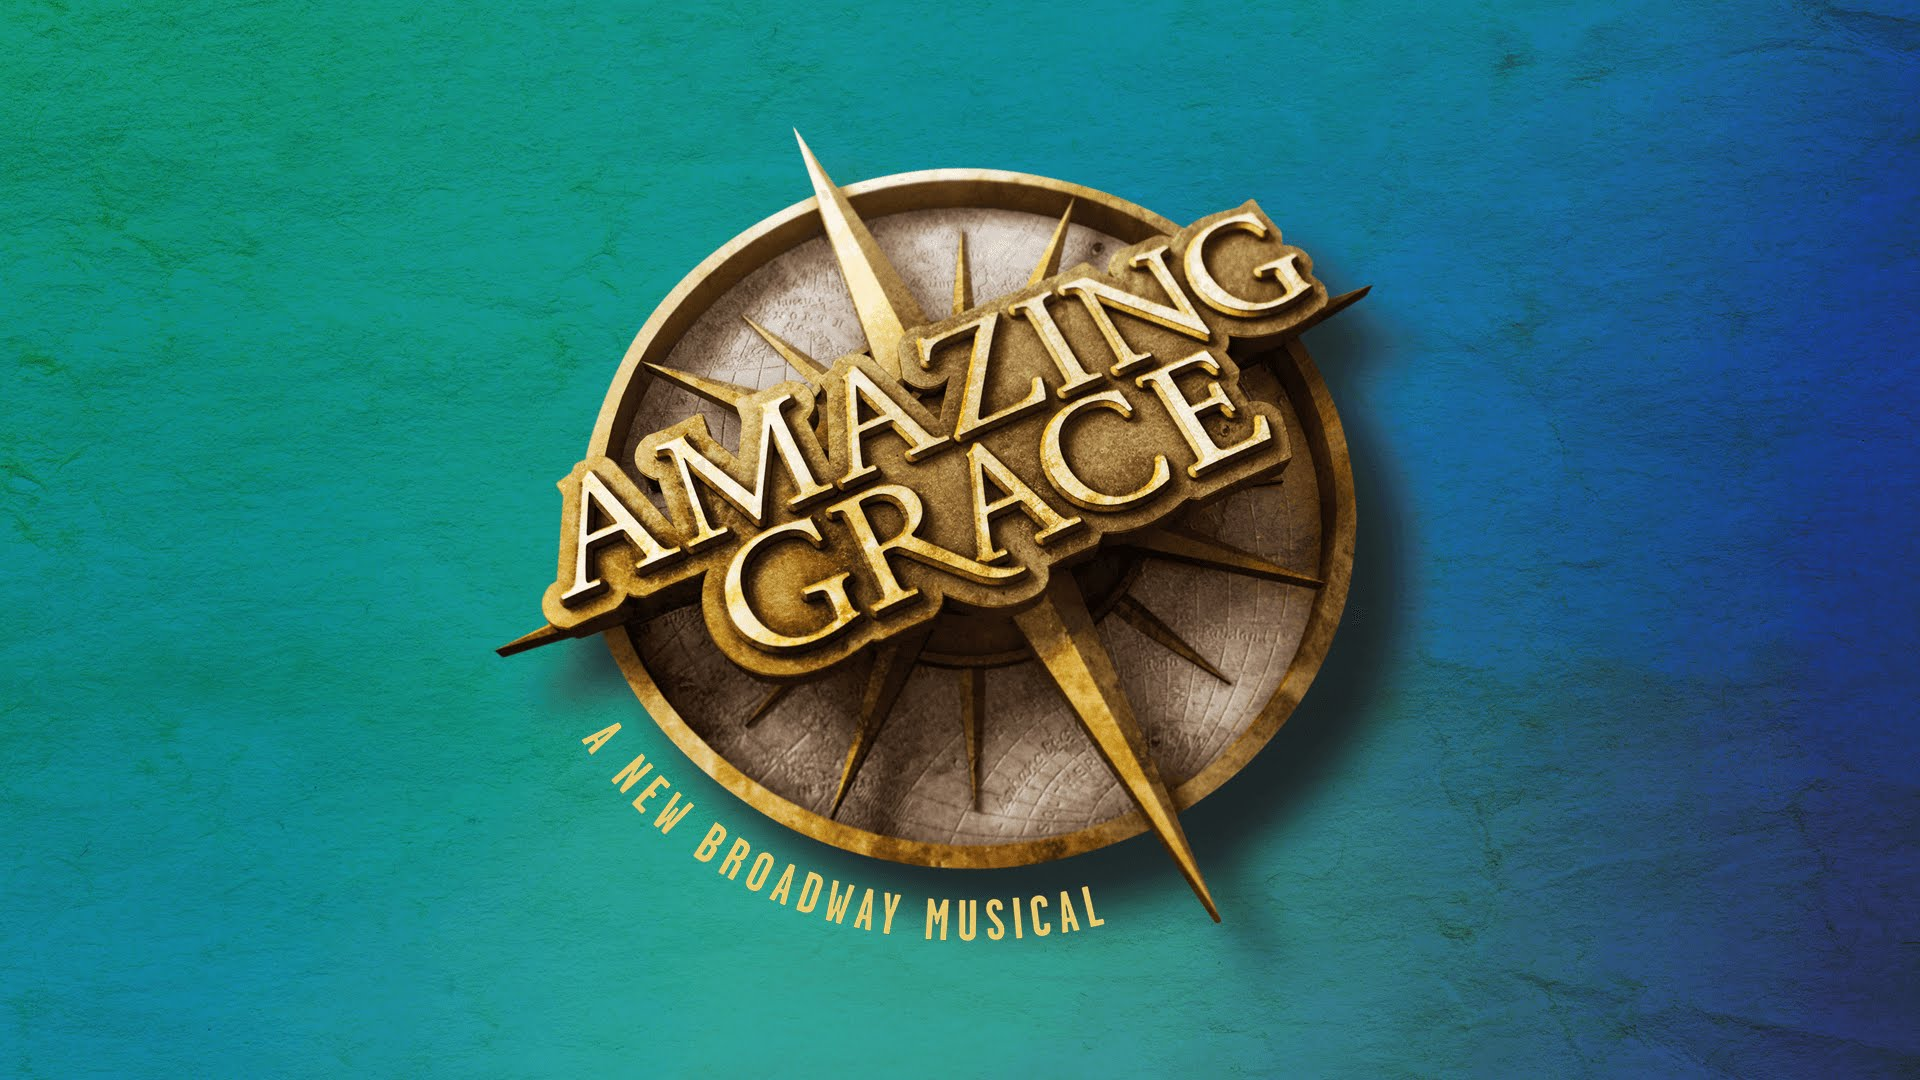 - David will be playing Robert Haweis, and understudying John Newton in the upcoming D.C. debut of the Broadway Musical, Amazing Grace.Directed by Gabriel Barre; Choreographed by Christopher GatelliPreviews begin November 14th, and performances run until January 7th, 2018.